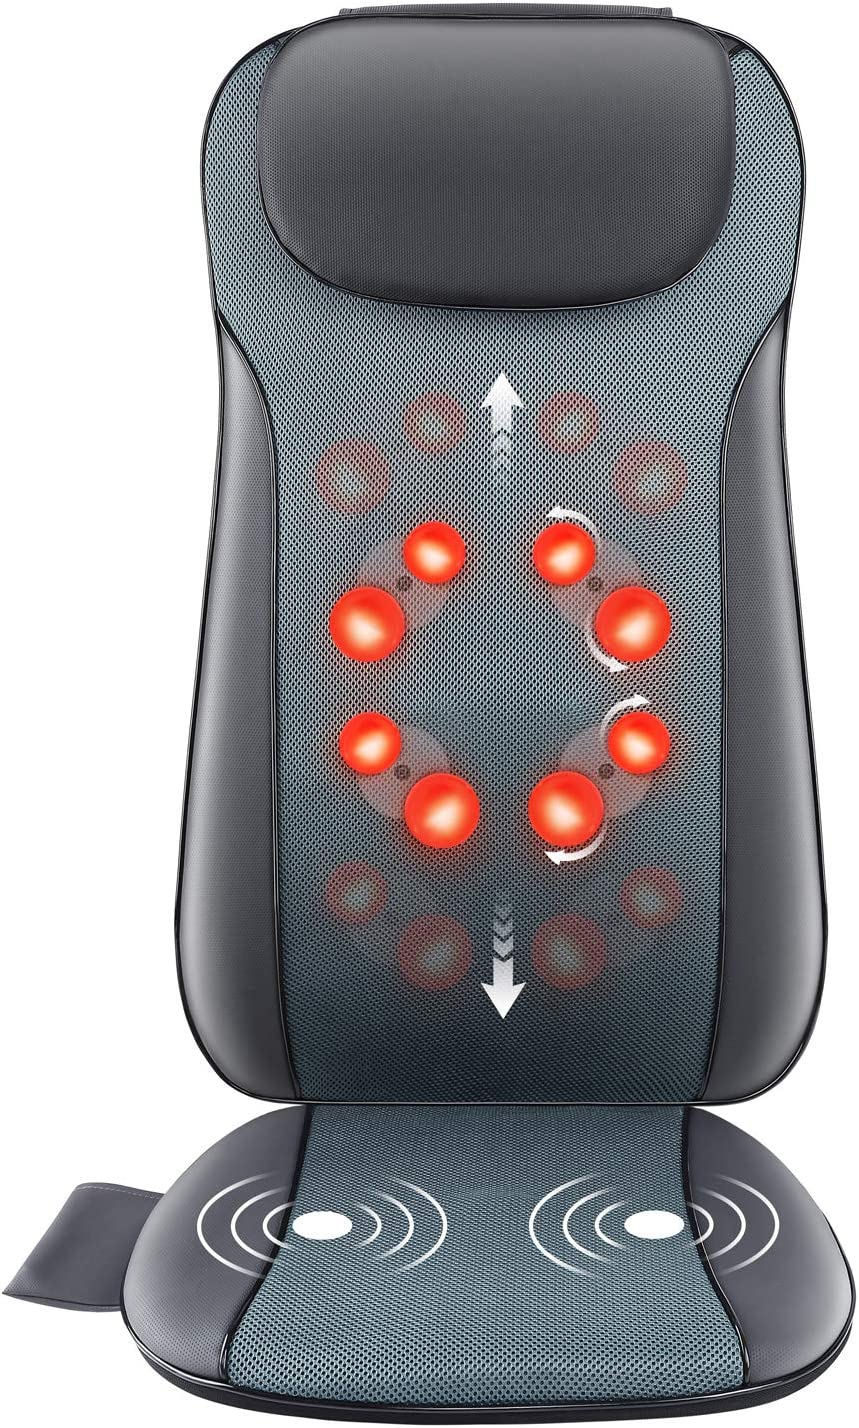 Rolli-Fit Shiatsu Back Massager with Heat, 2D&3D Kneading Full Back Massager with 8 Massage Nodes, Massage Chair Pad for Back Waist Pain Relief, Home Office Seat Massager Cushion Use